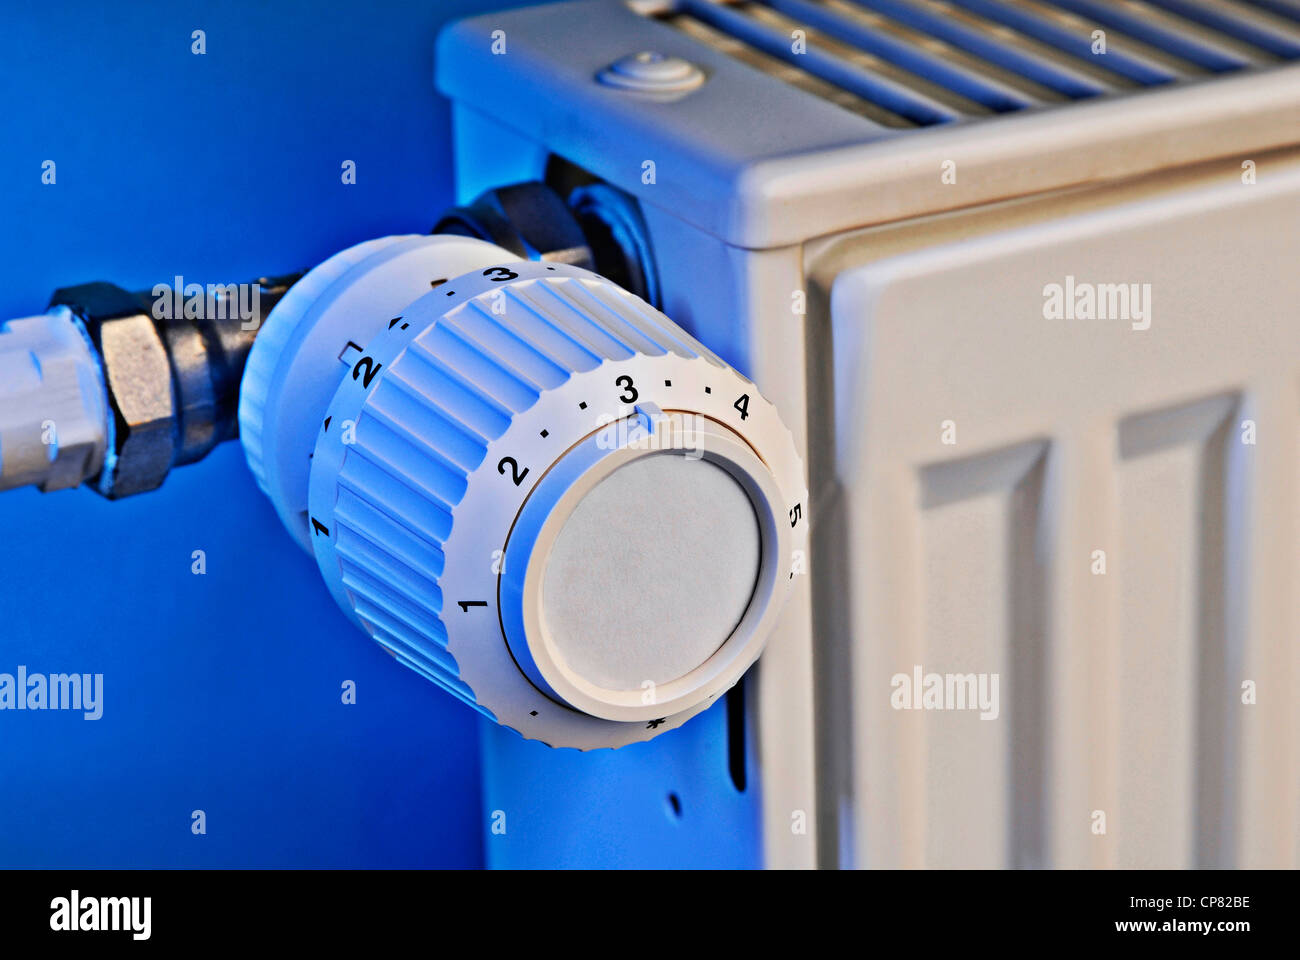 Close up of a heating thermostat. - Stock Image